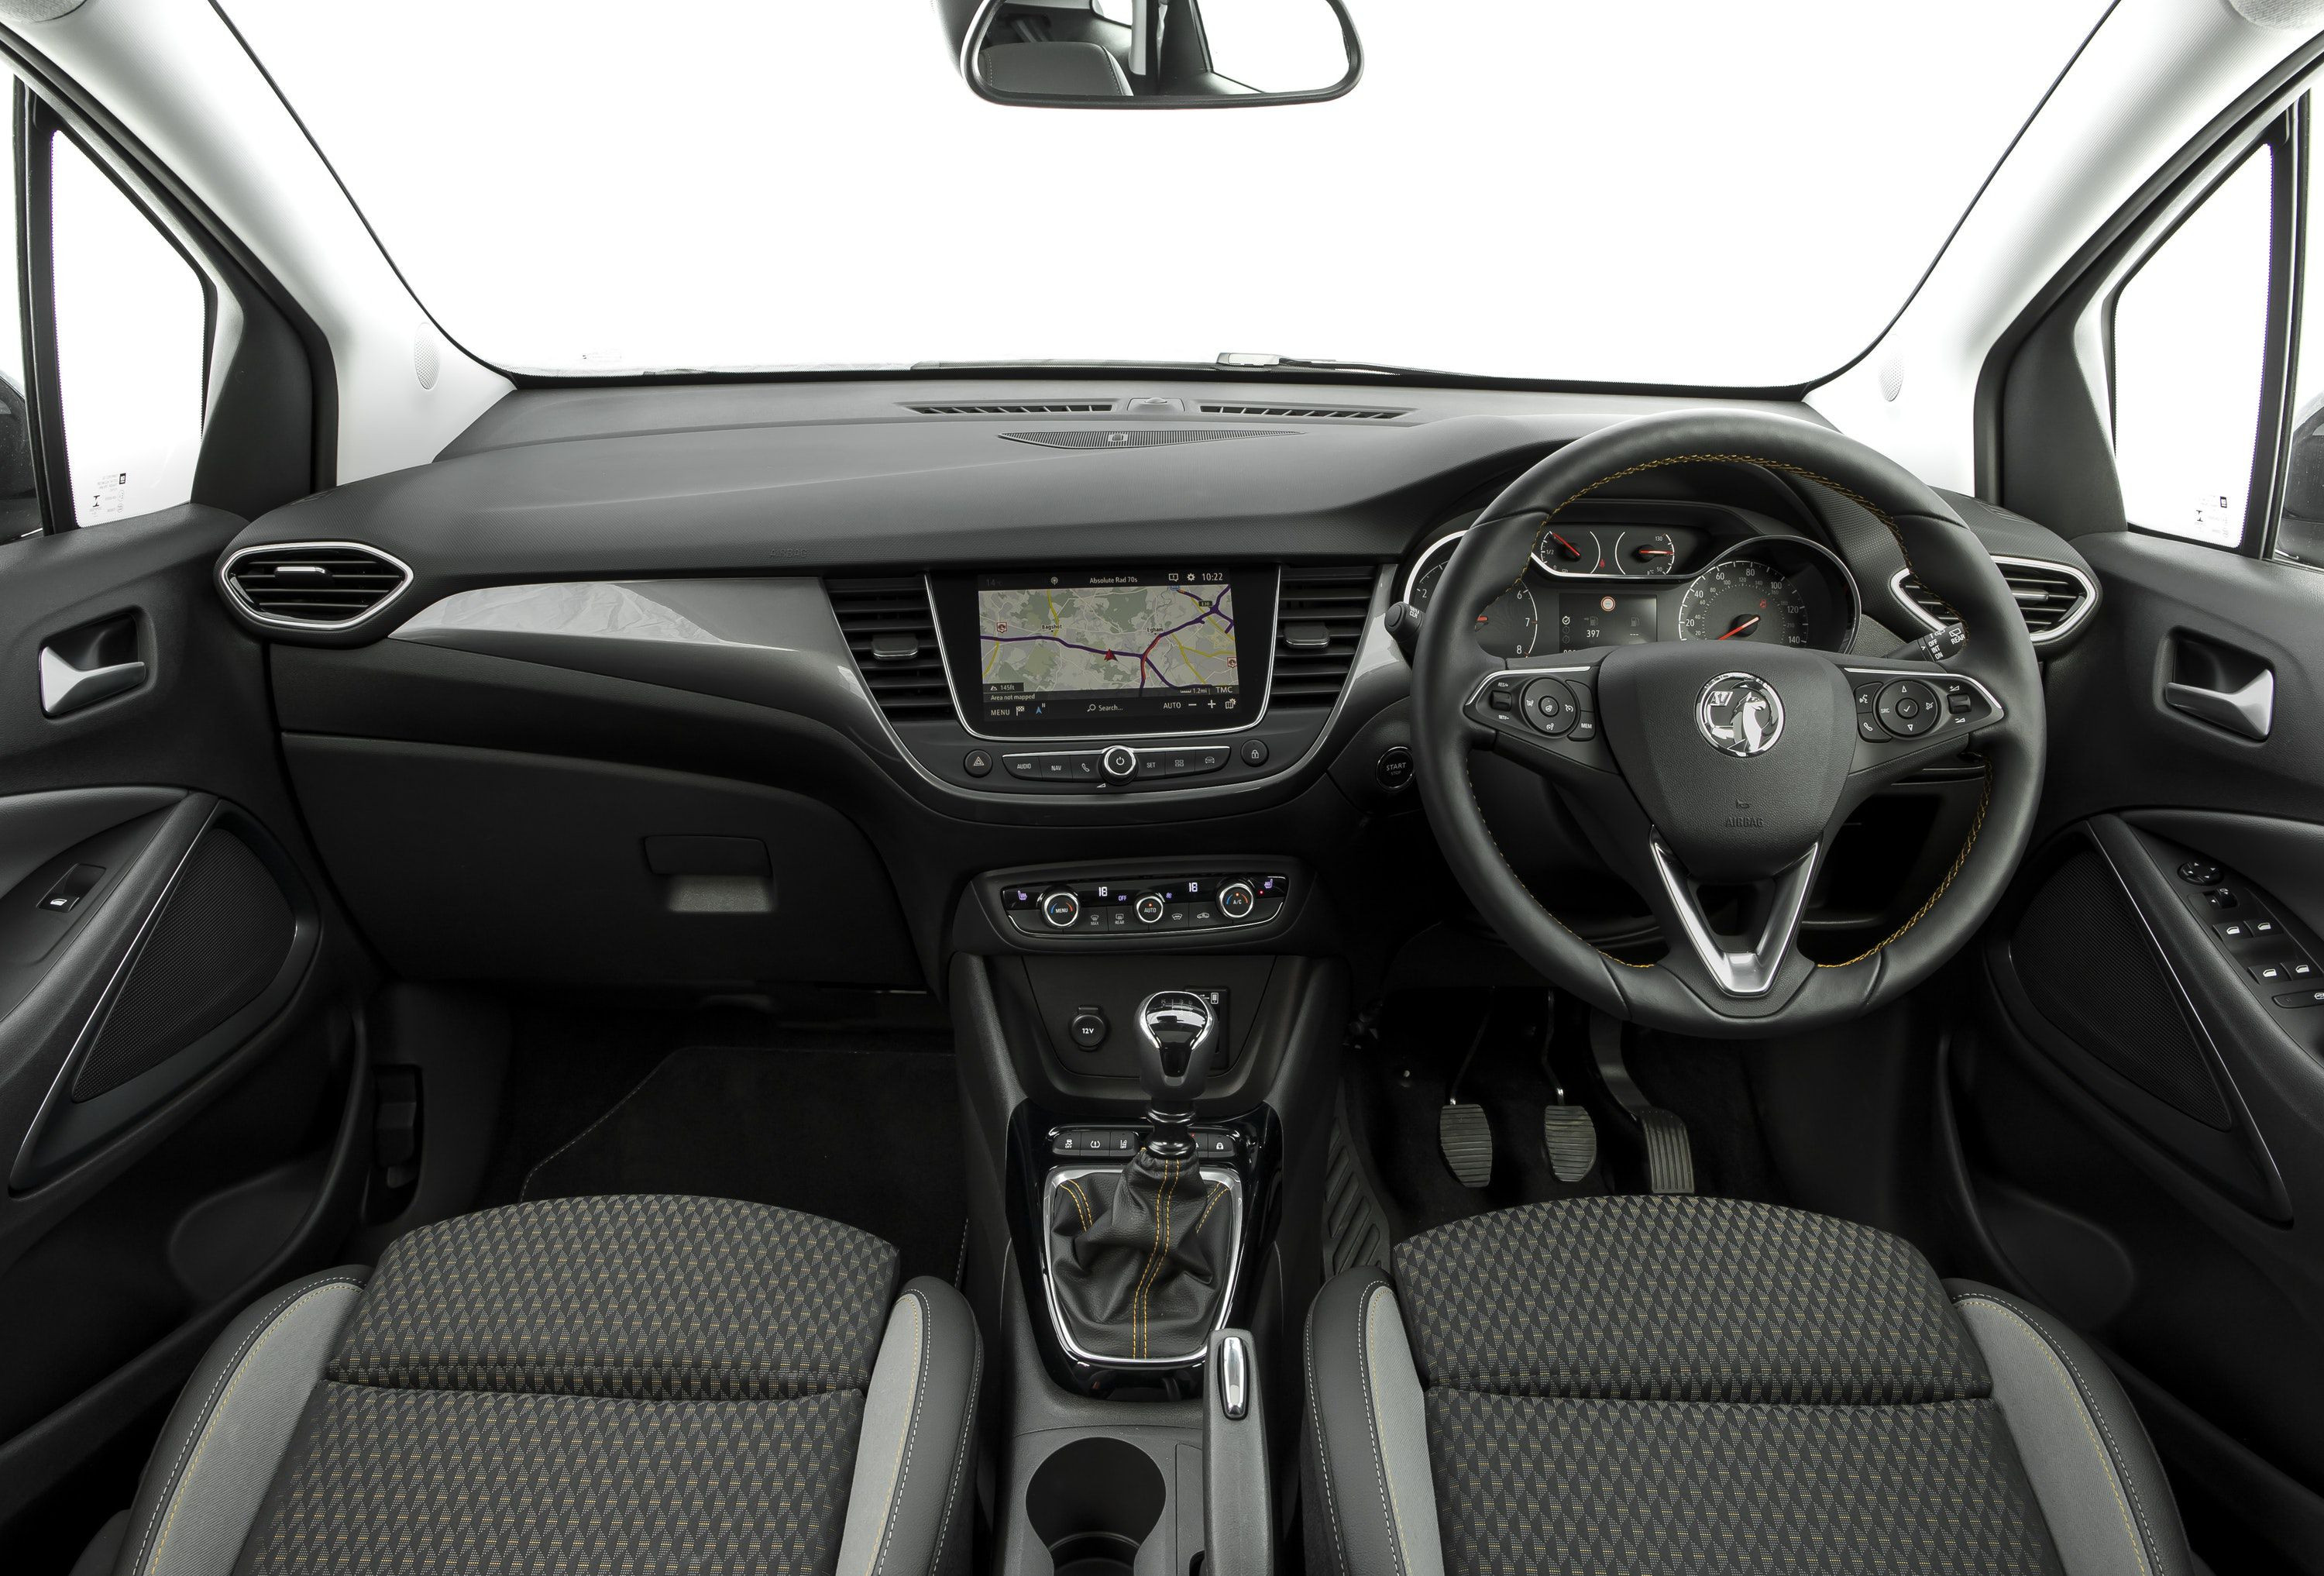 interior of vauxhall Crossland